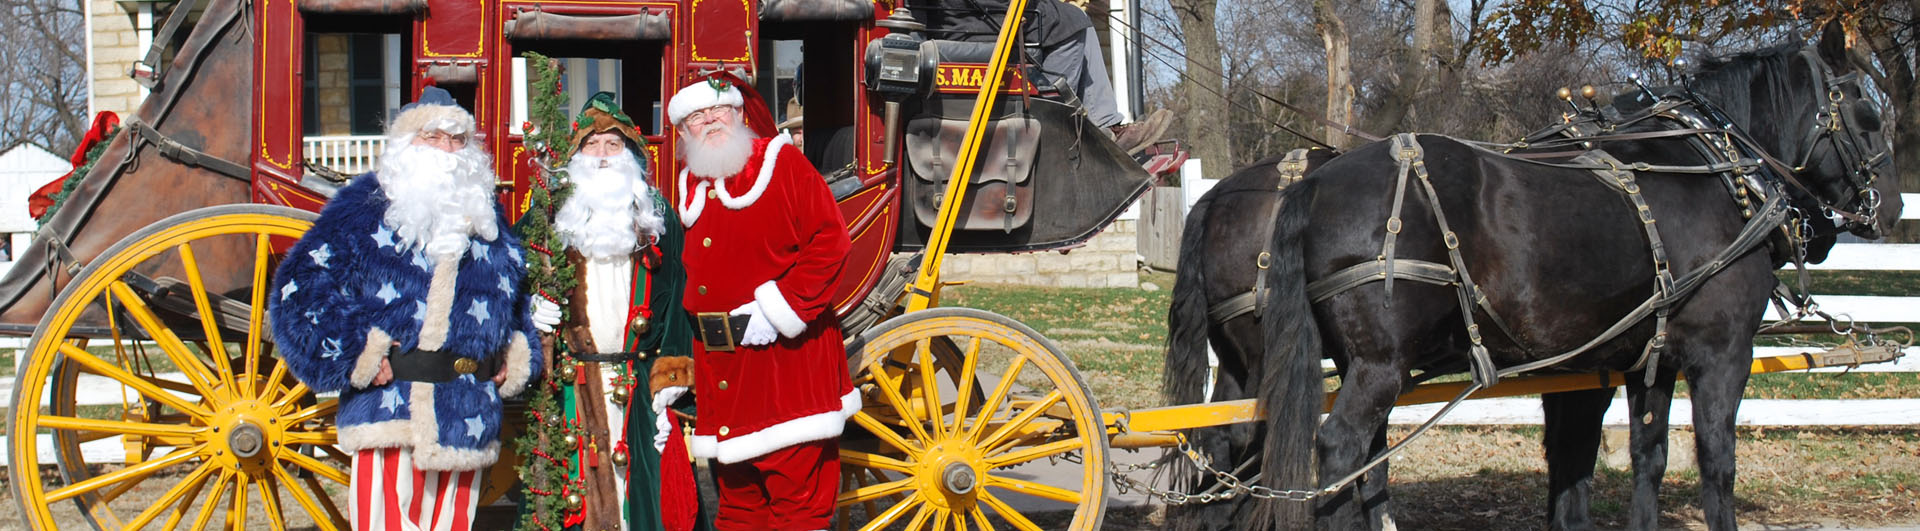 Santa and Stagecoach